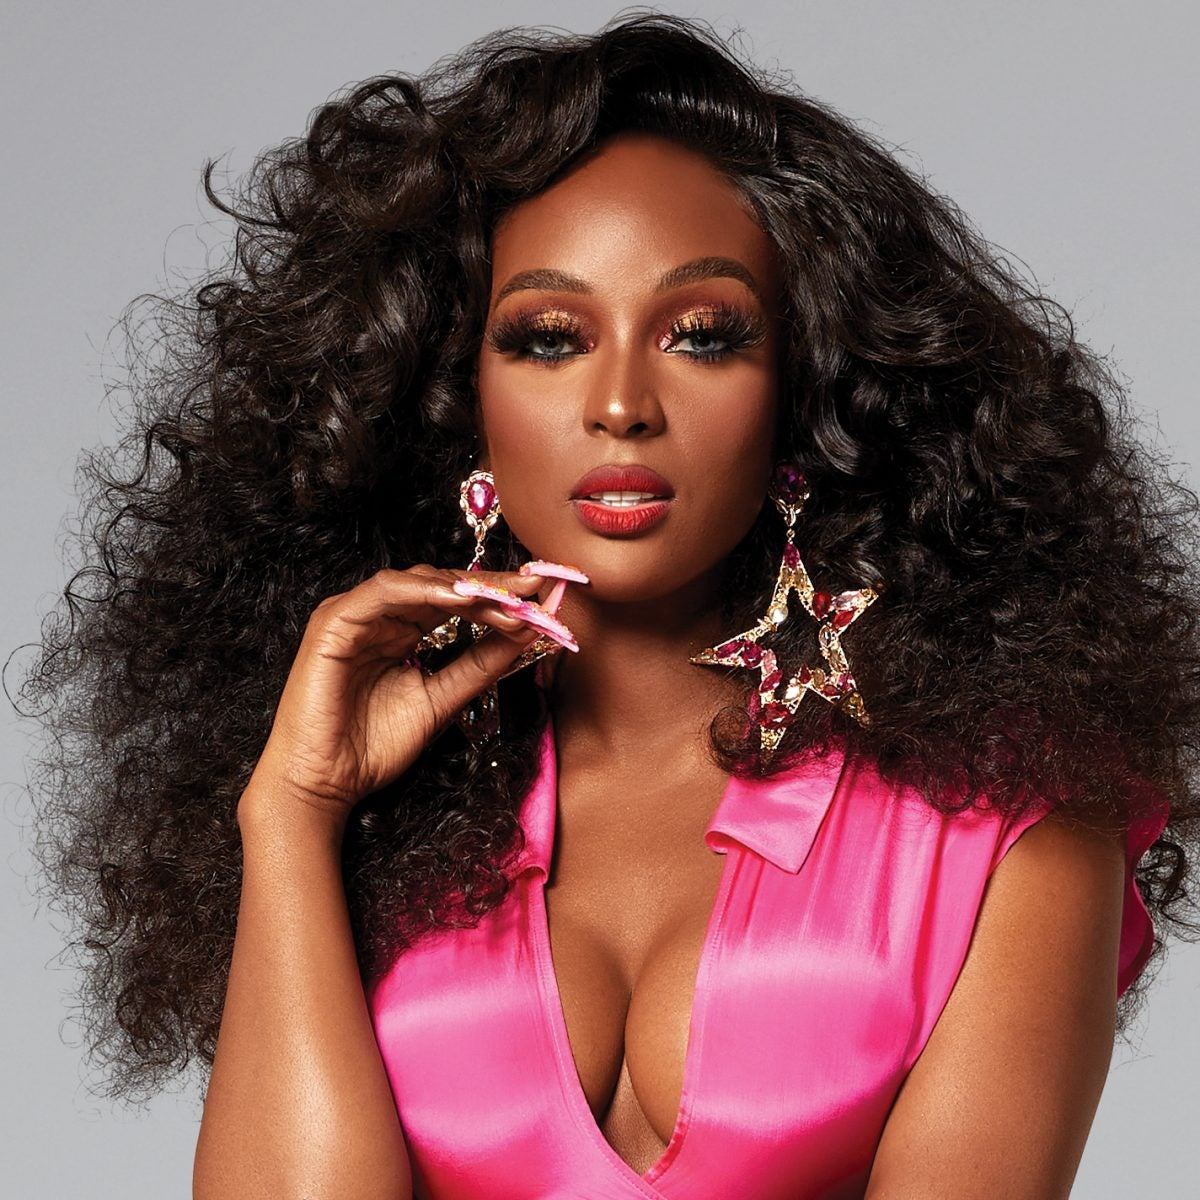 """With A Major Weight Loss And Growing Real Estate Empire, Amara La Negra Is """"Trying To Be The Best I Can Be"""""""